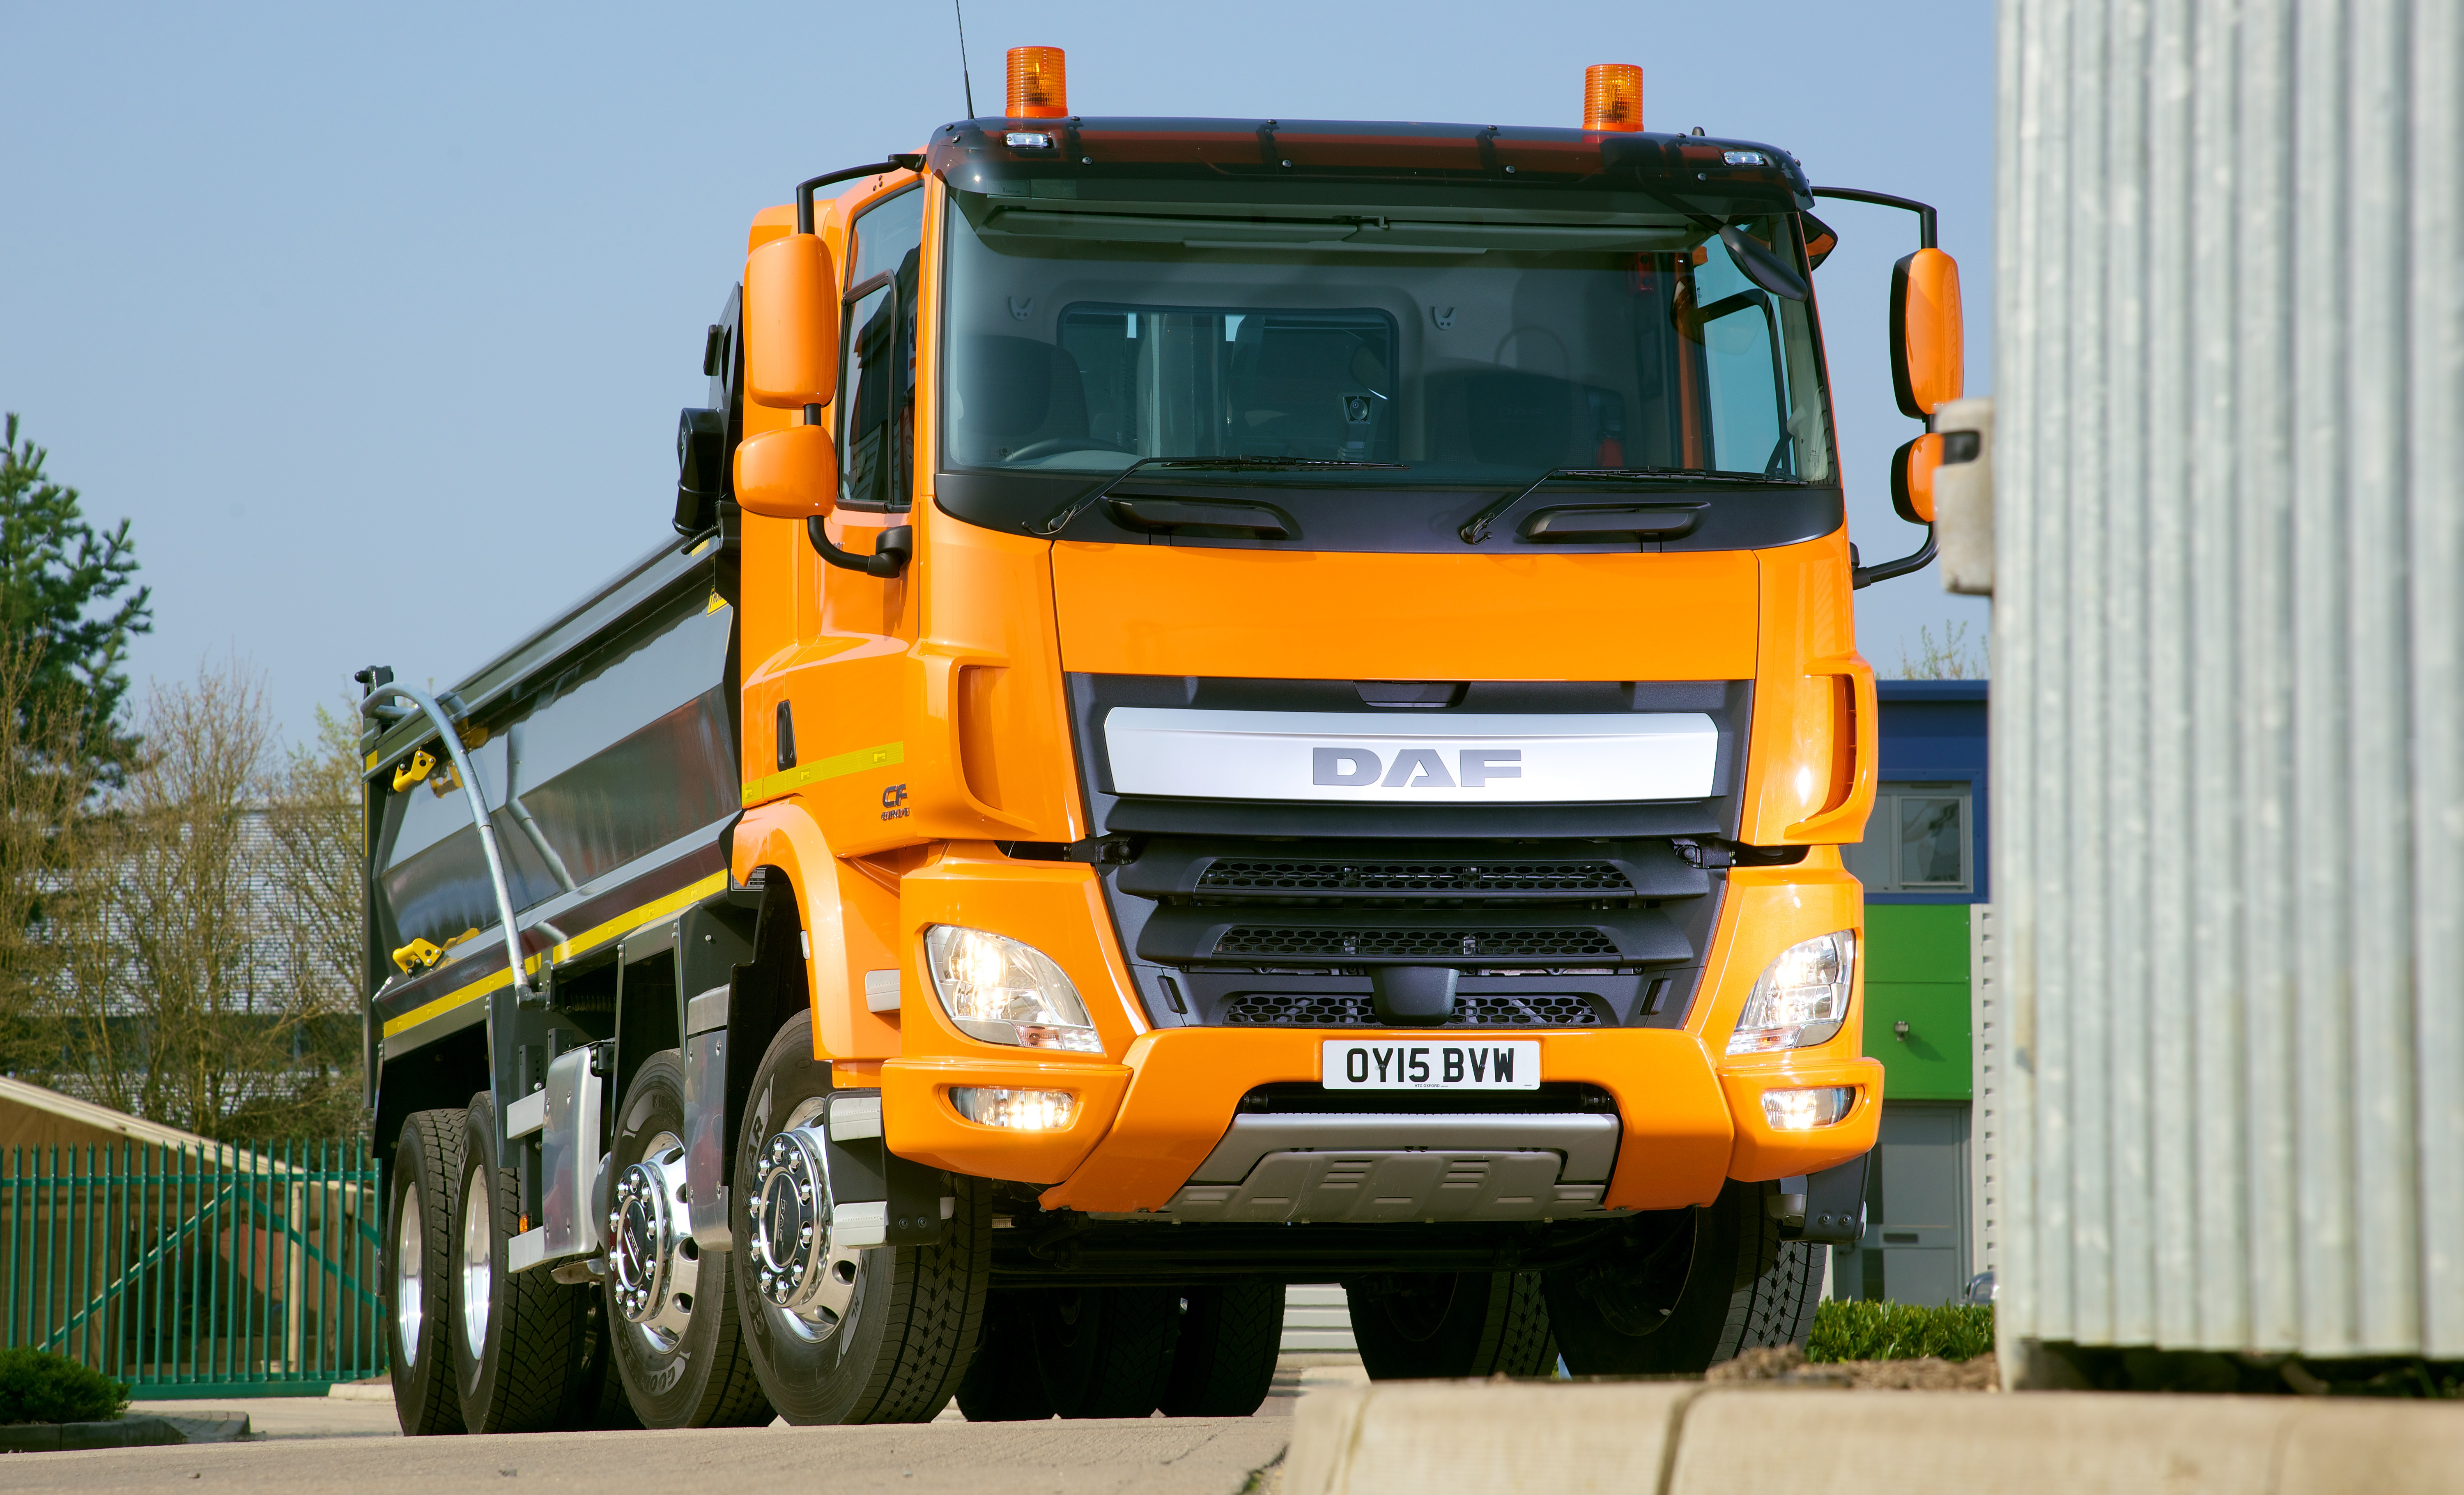 Daf Pre Empts Lengthy Lead Times With Tip Skip Grab And